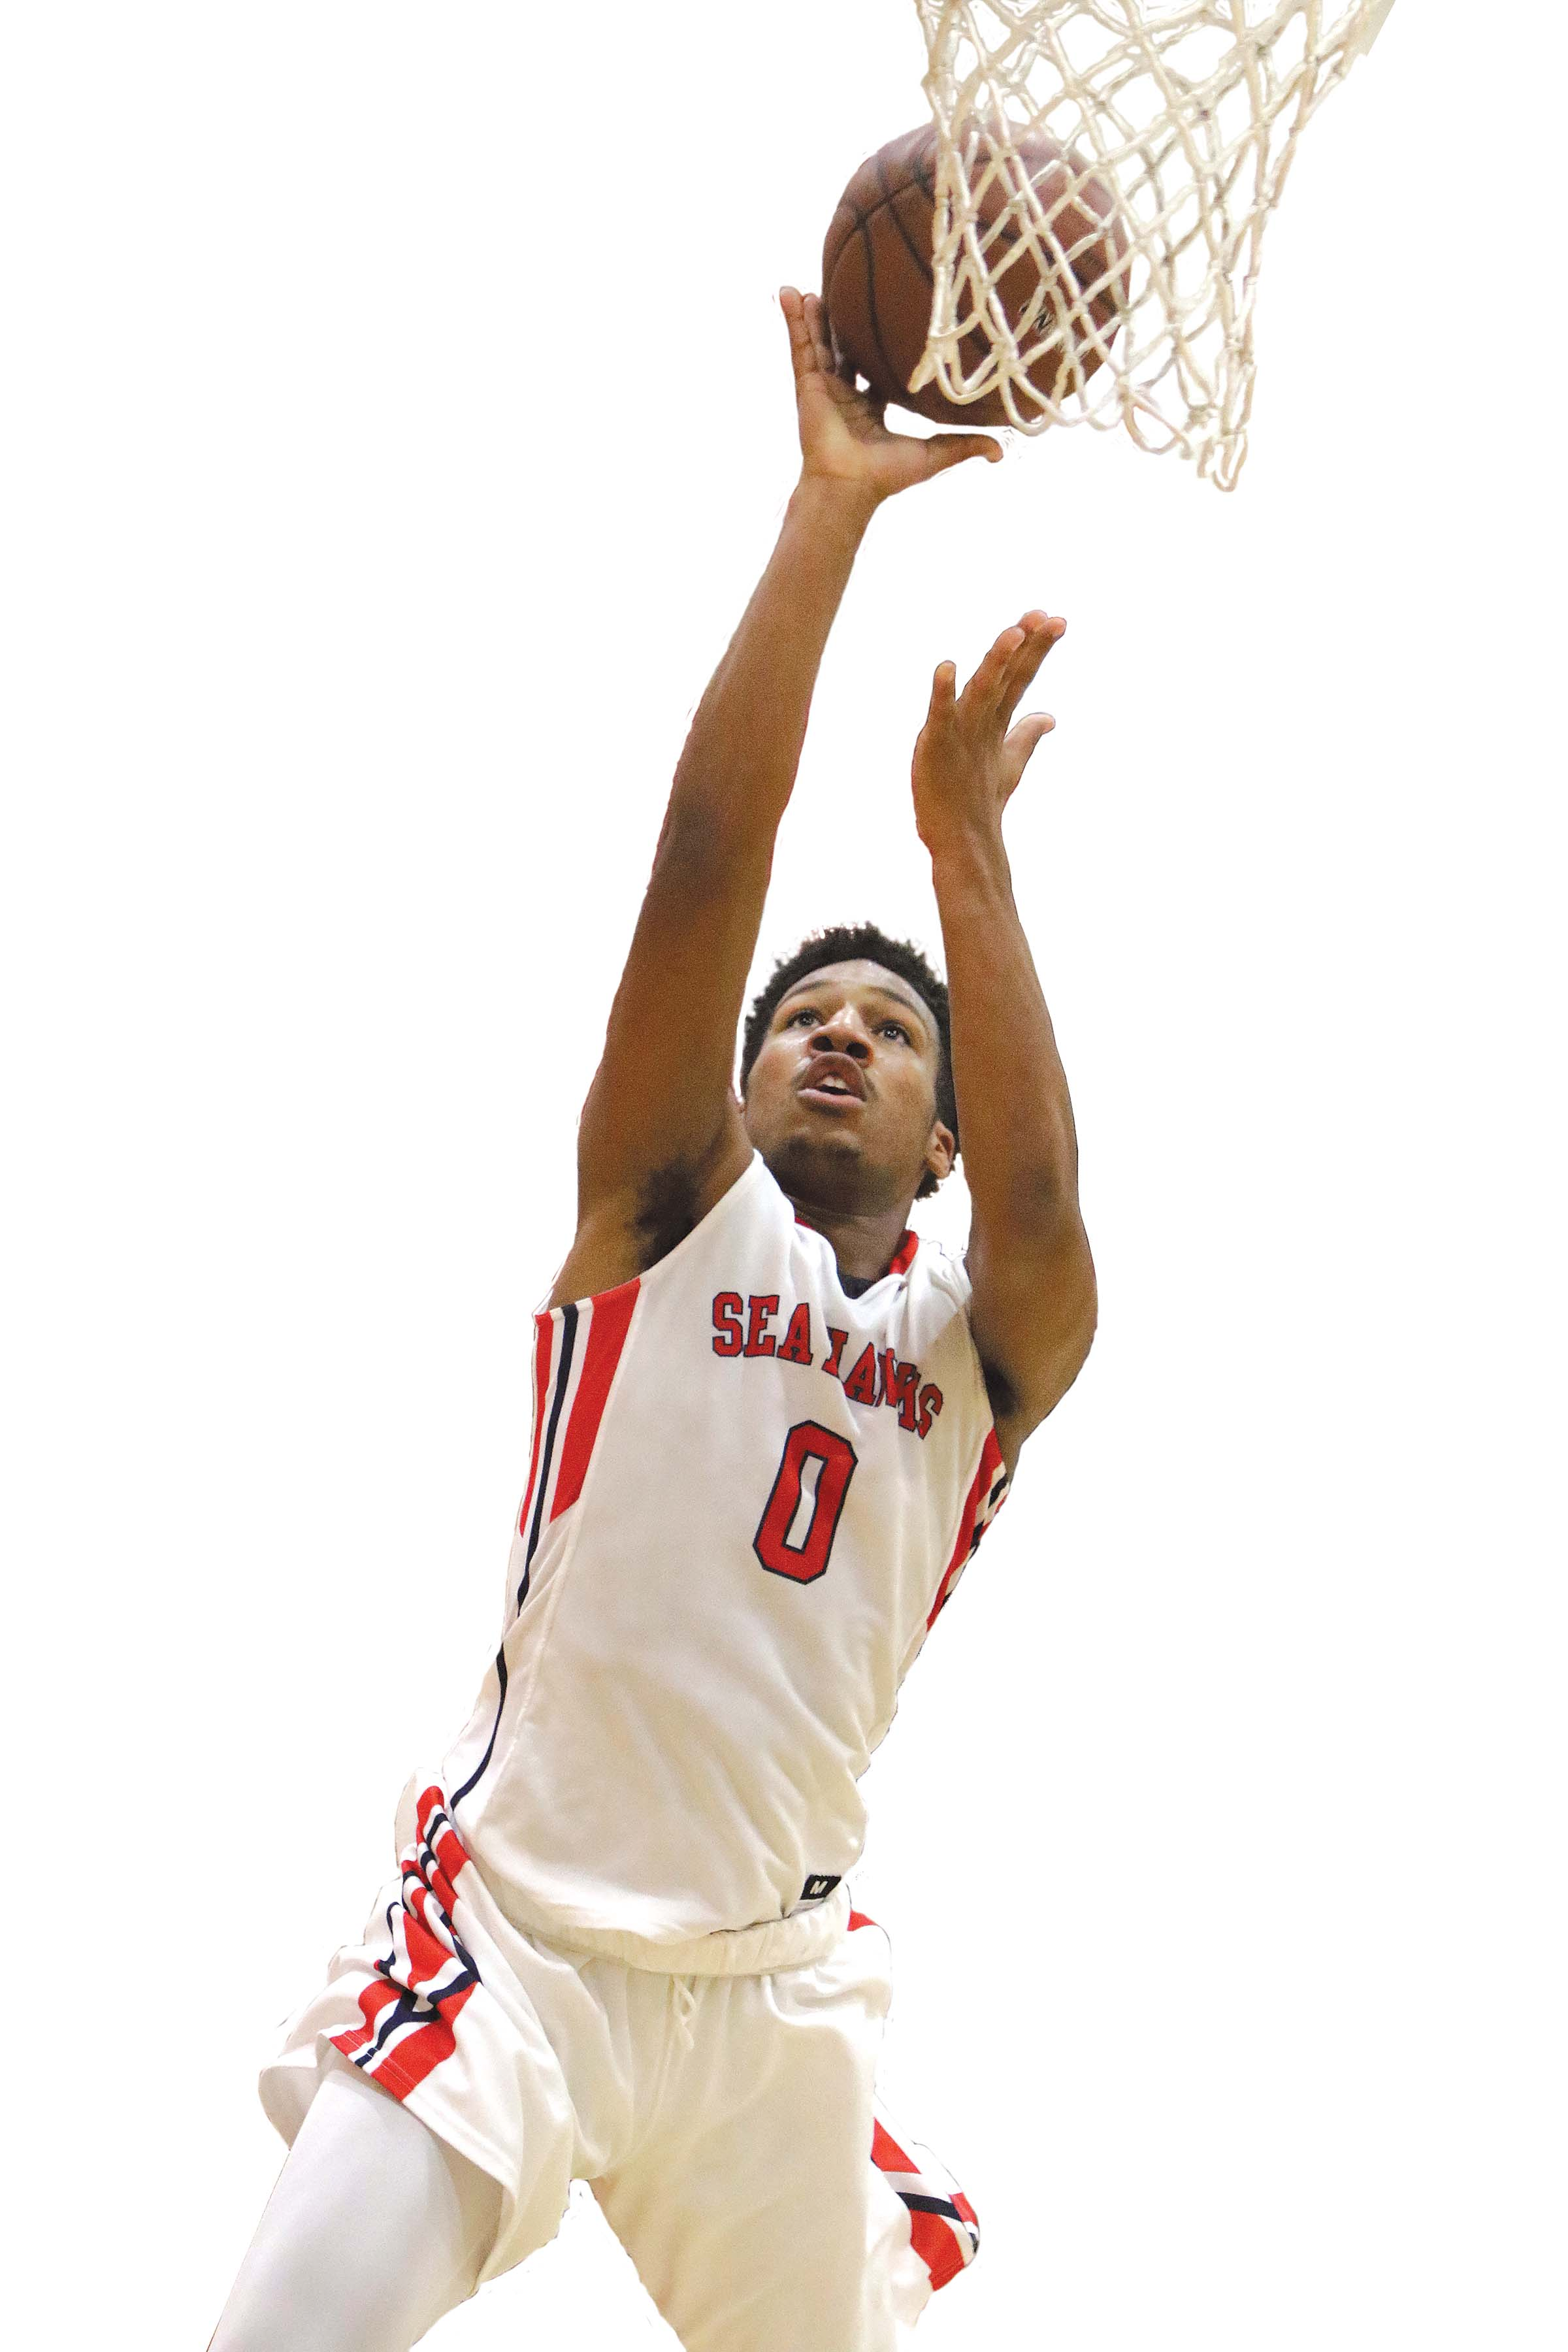 Shooting star: the passing of 18-year-old Redondo Union student and basketball player Ryse Williams leaves the Sea Hawk community in shock